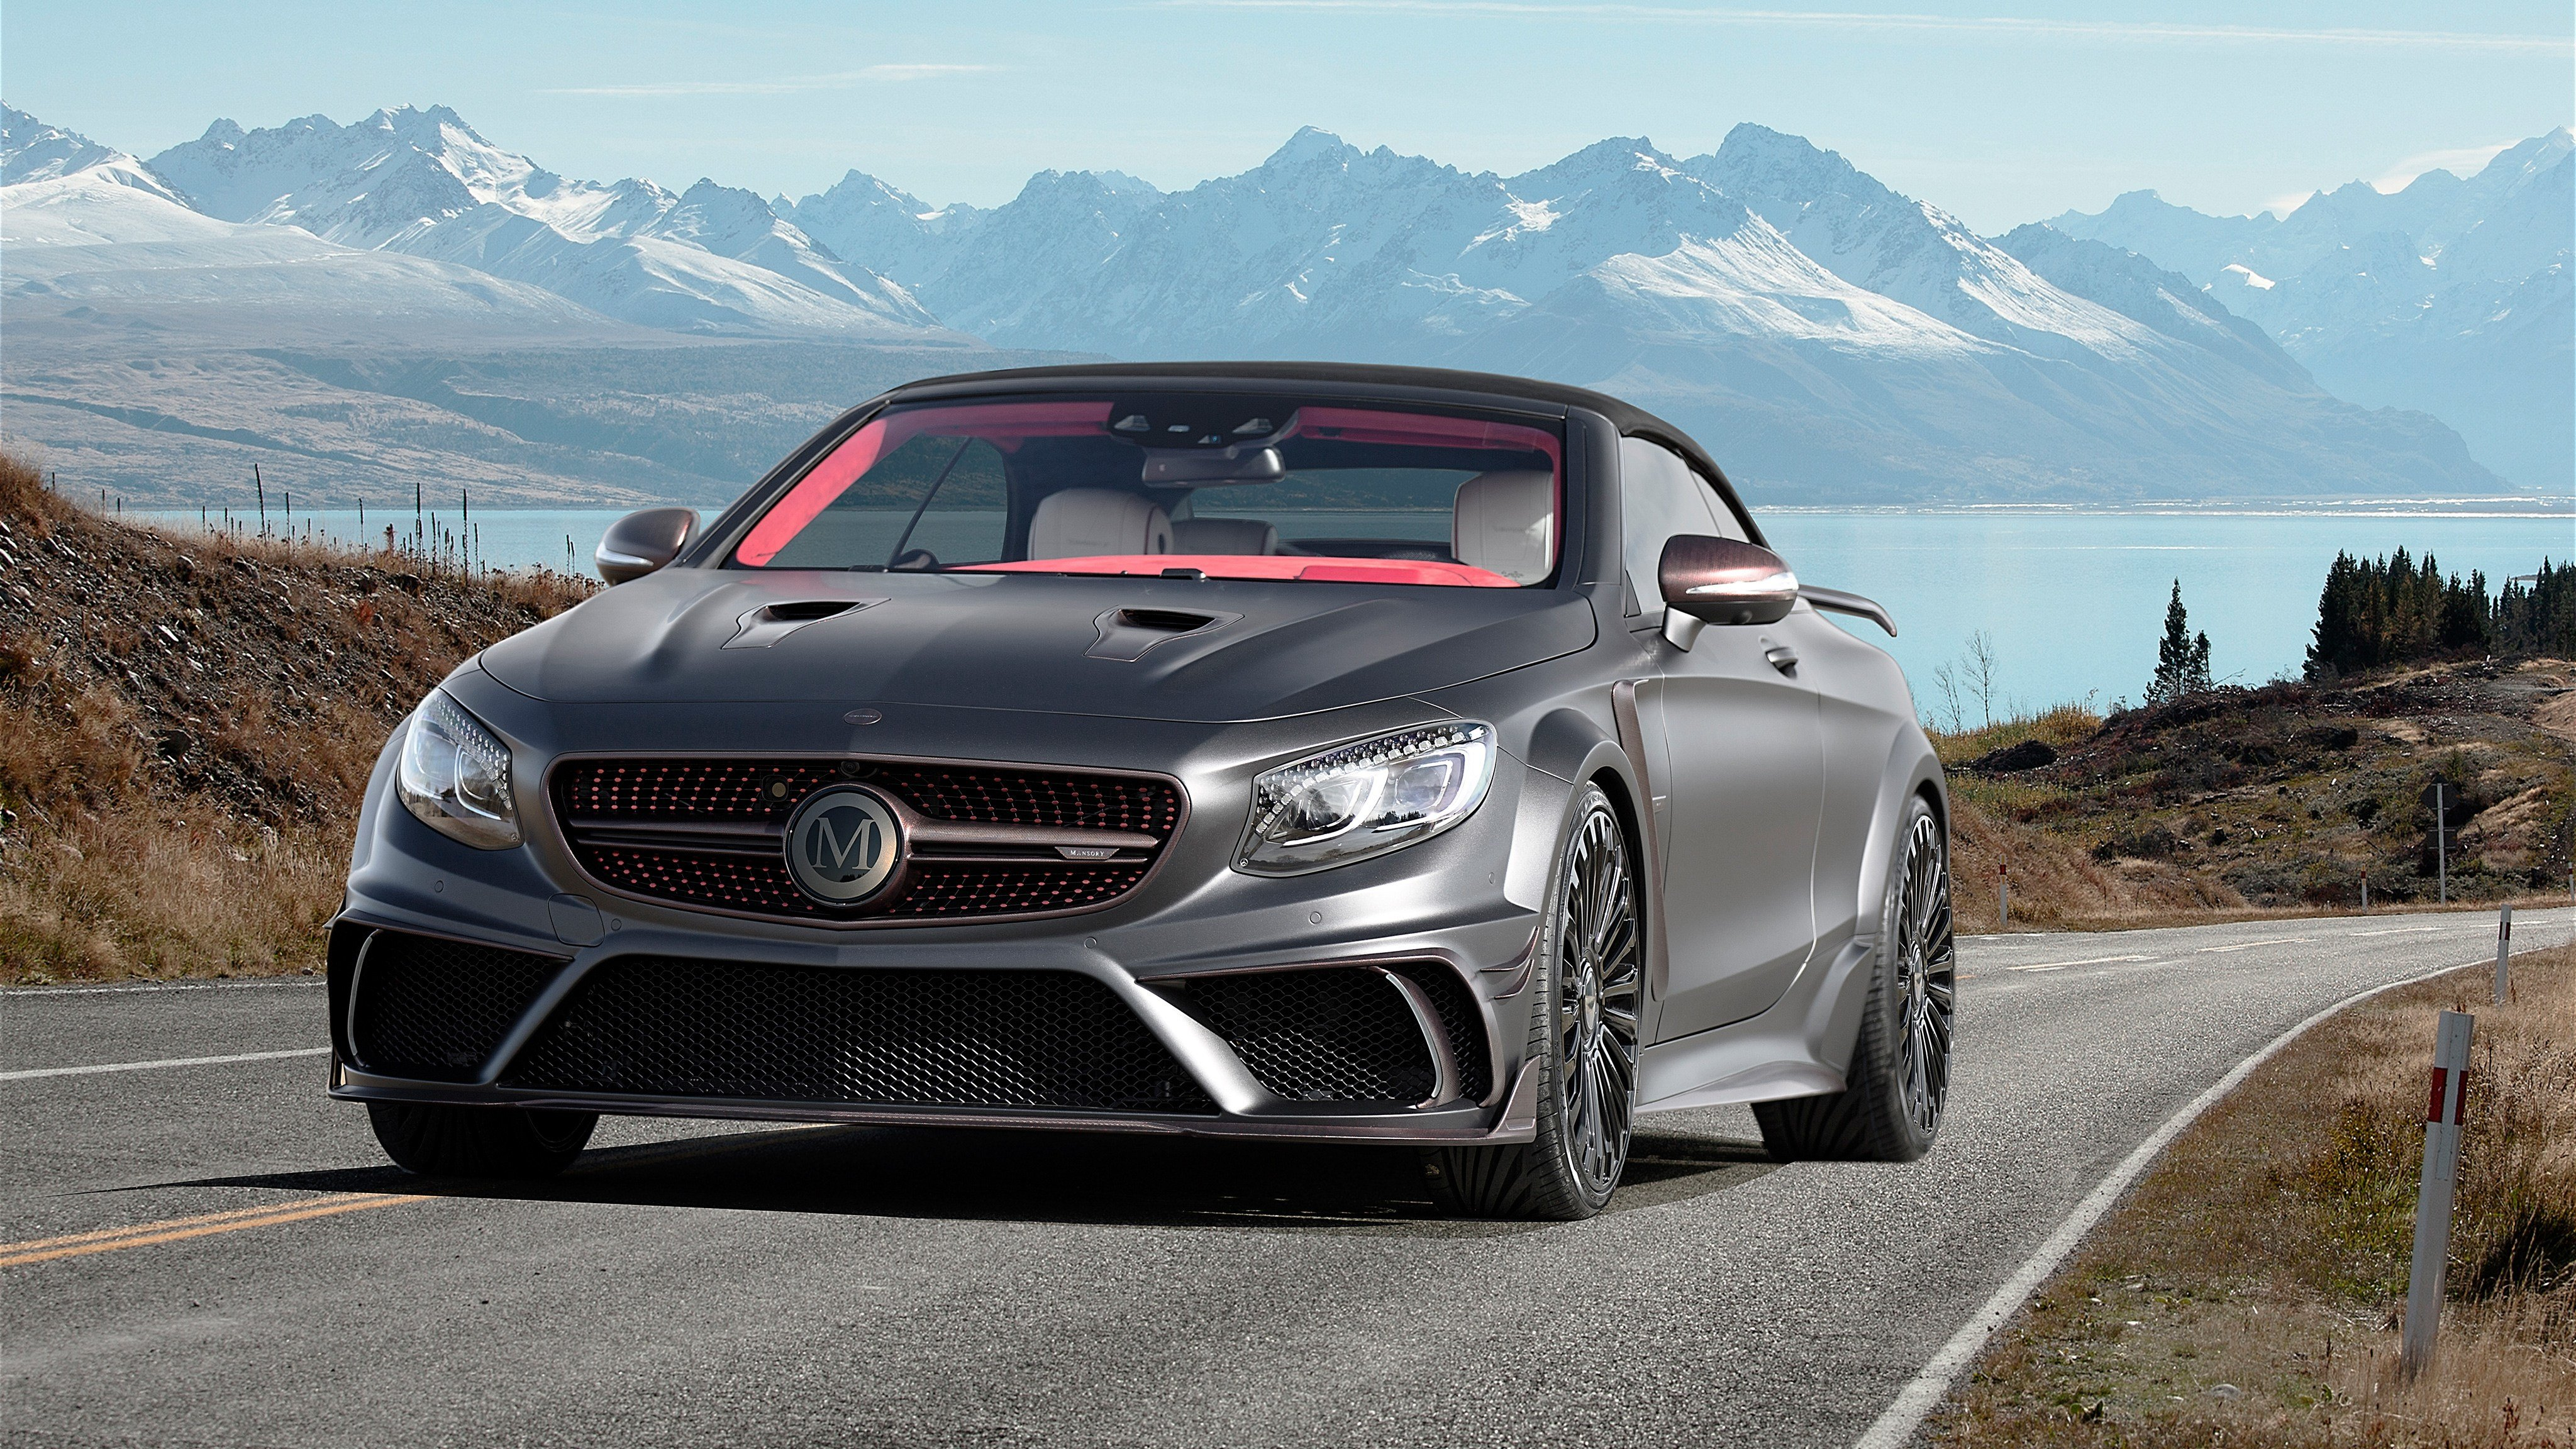 Latest Mansory Mercedes Benz S63 Amg Cabriolet Black Edition 4K Free Download